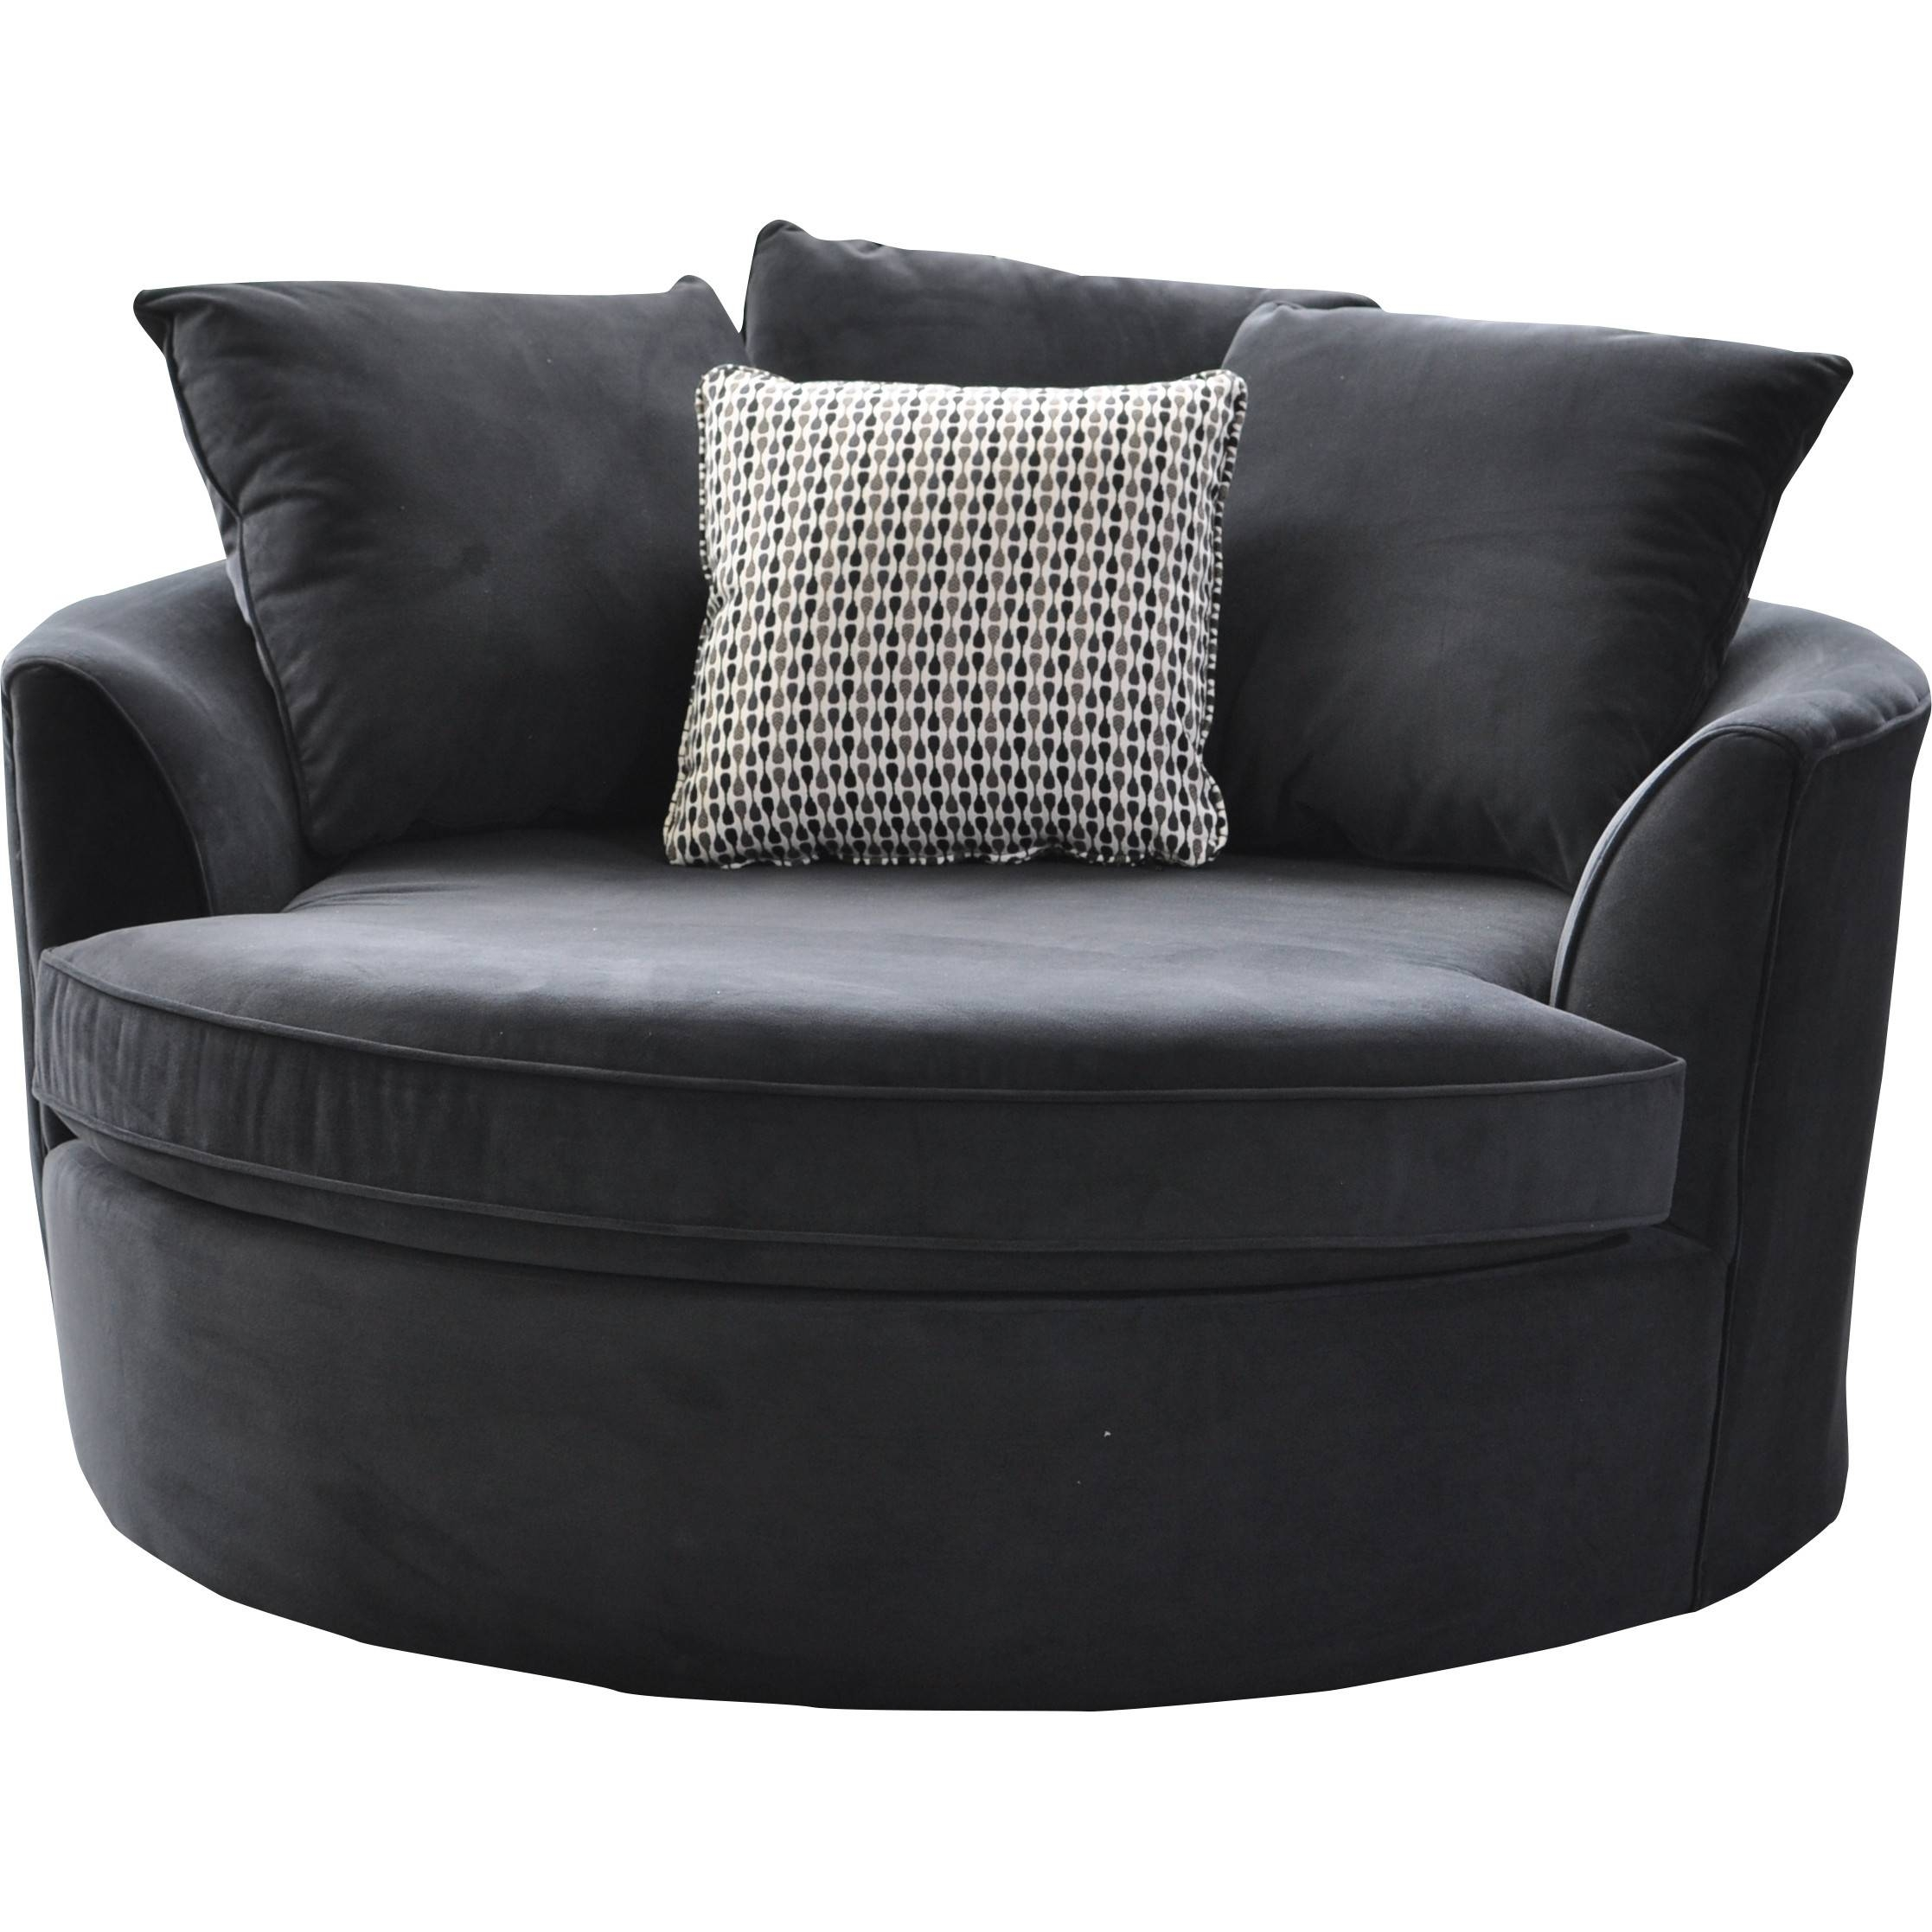 Cuddle Chairs Cuddler Swivel Sofa Chair ~ Hmmi in Cuddler Swivel Sofa Chairs (Image 6 of 30)